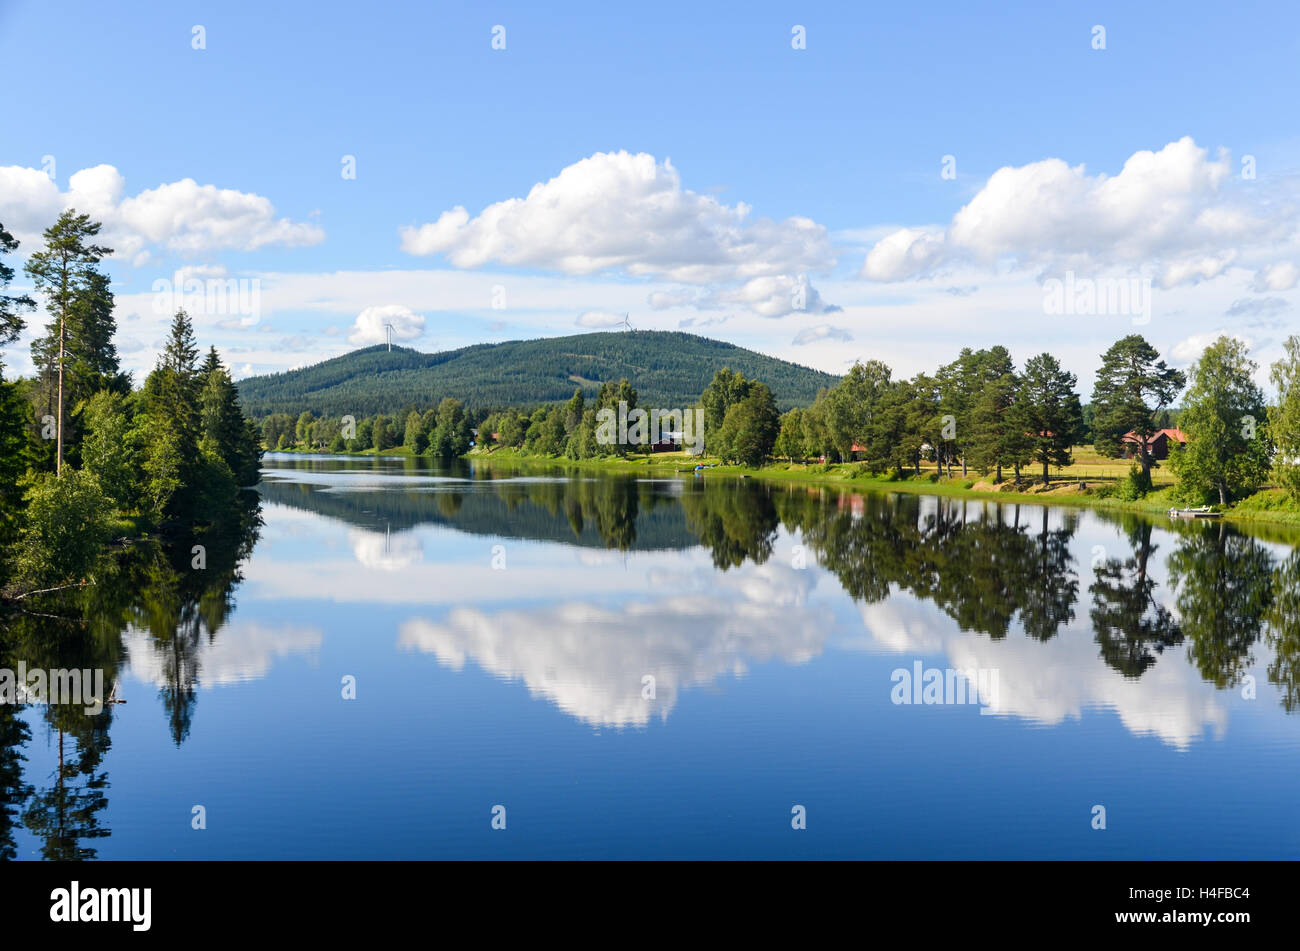 Lakehouse reflecting in the lake in a forest, Sweden Stock Photo